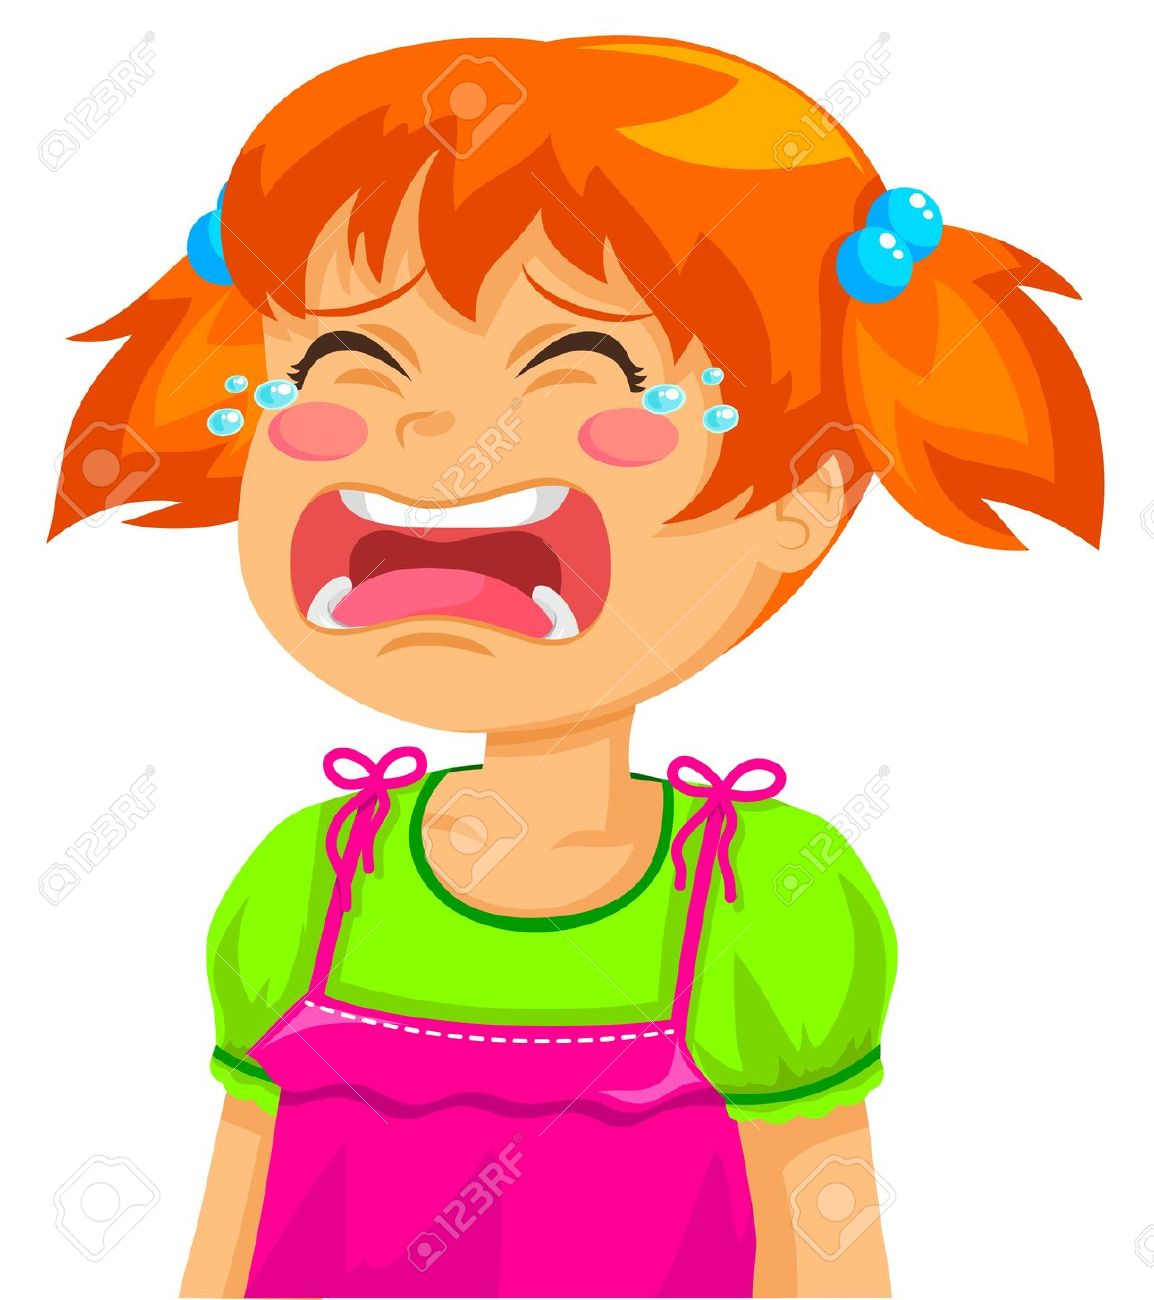 Crying Clipart Clipart Panda Free Clipart Images